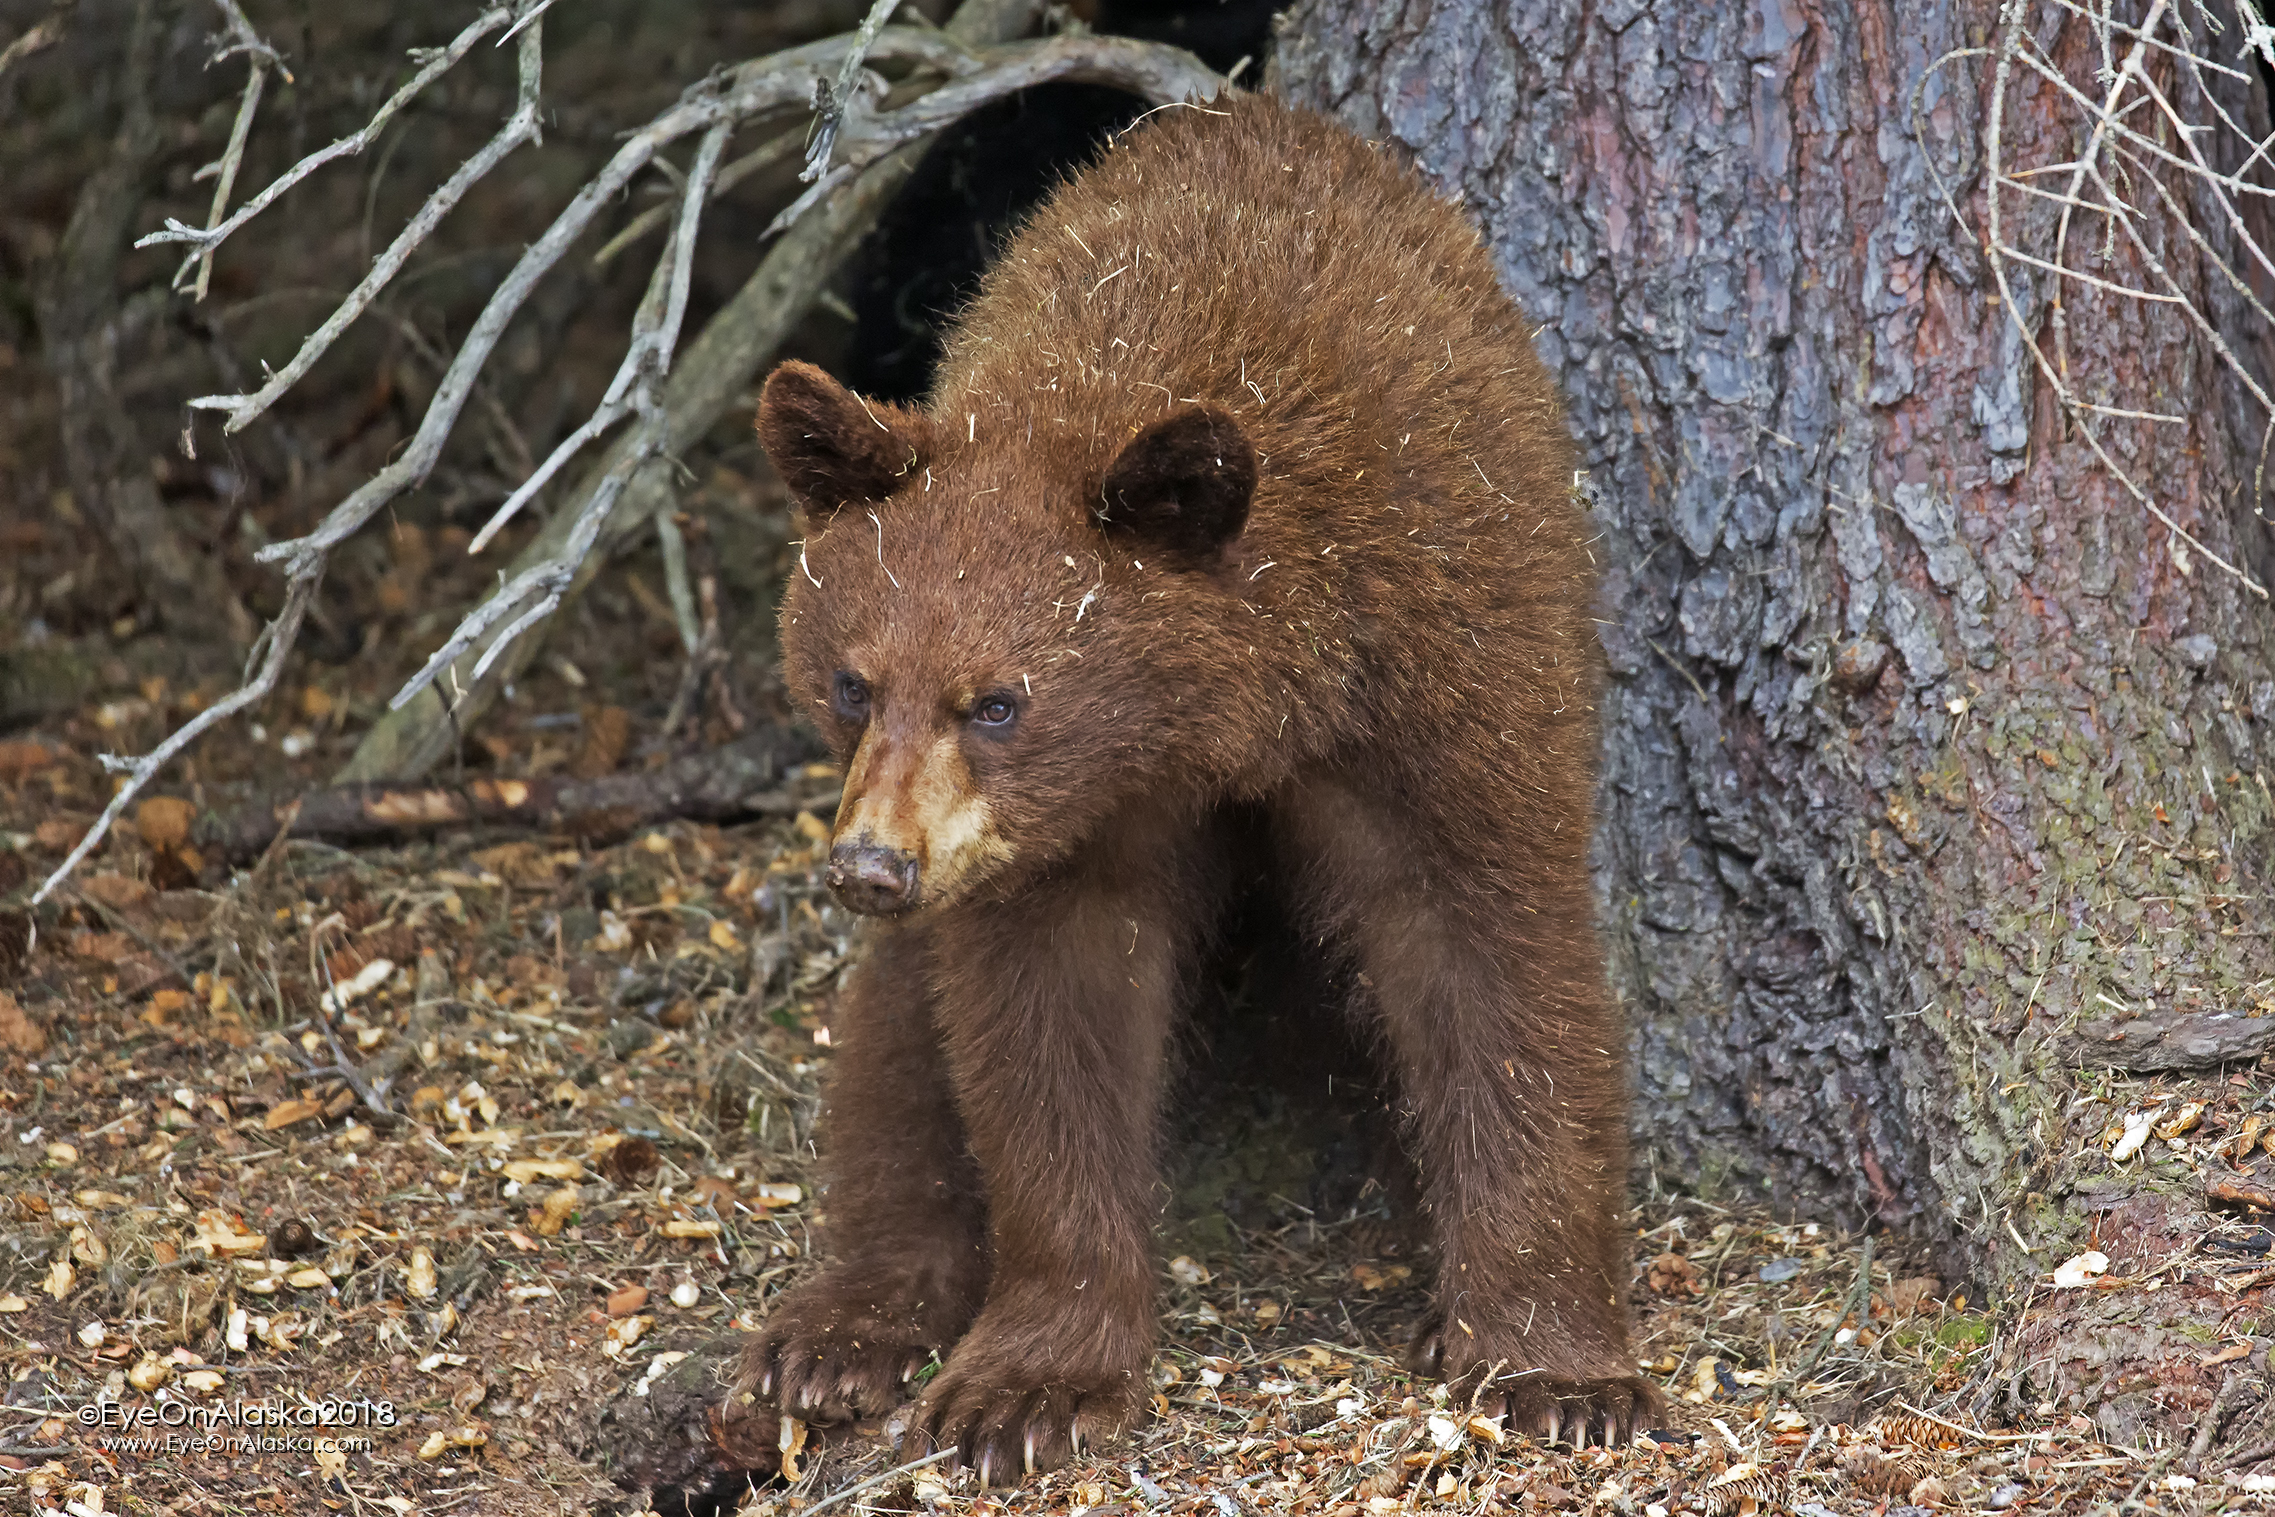 One of the dramatically cinnamon colored cubs.